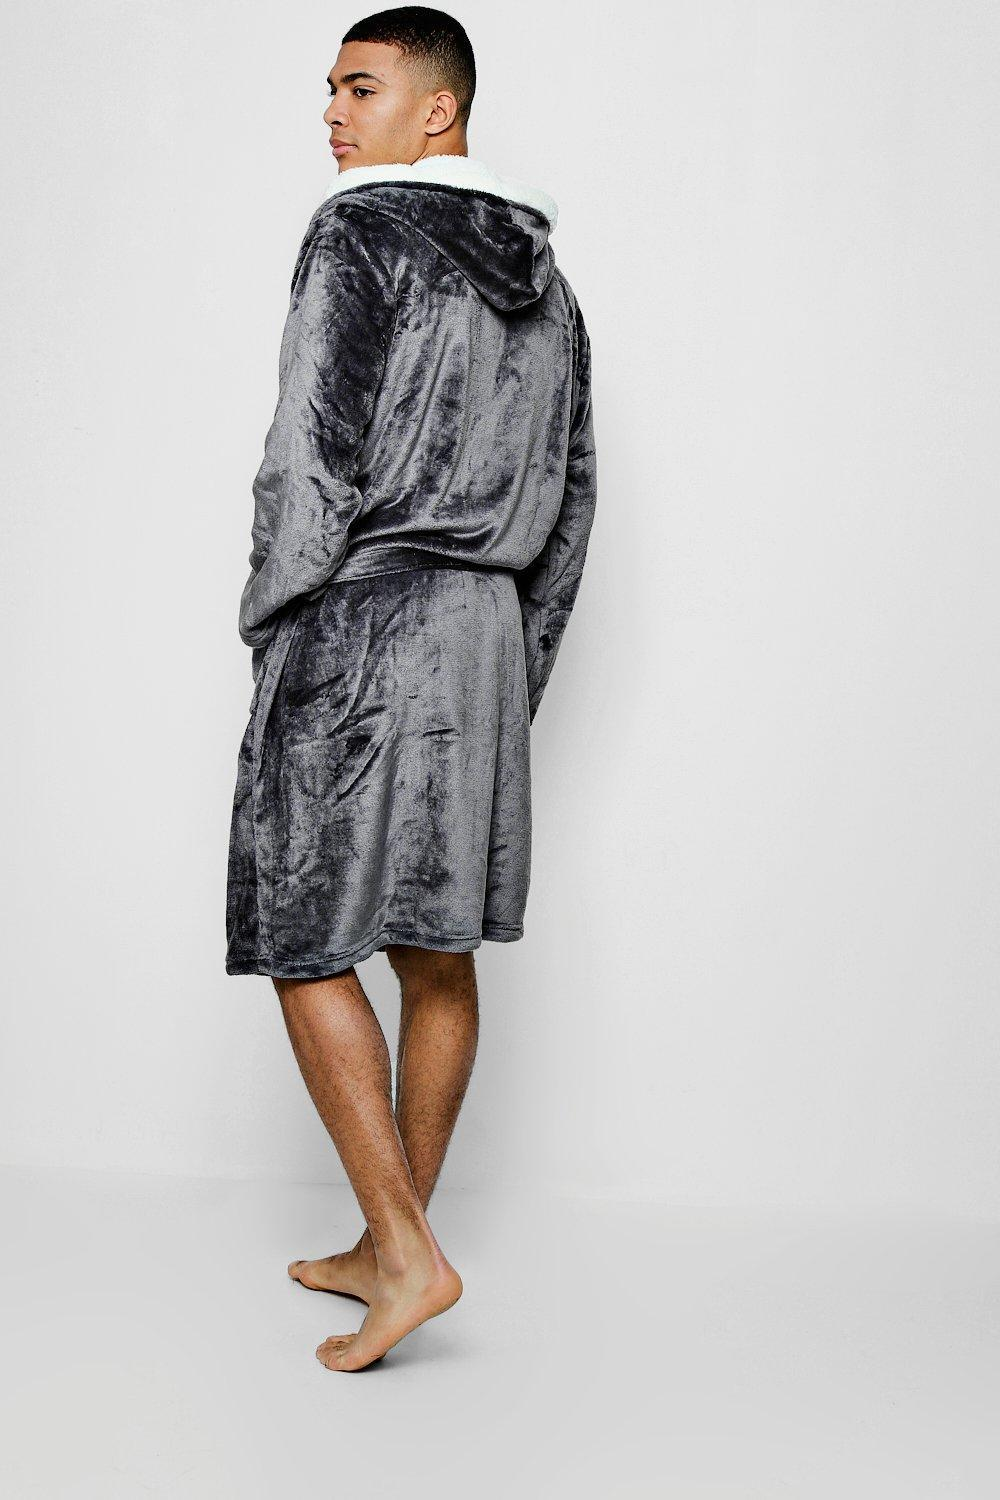 b9a0bc8150 Lyst - Boohoo Hooded Fleece Robe With Sherpa Lining in Gray for Men